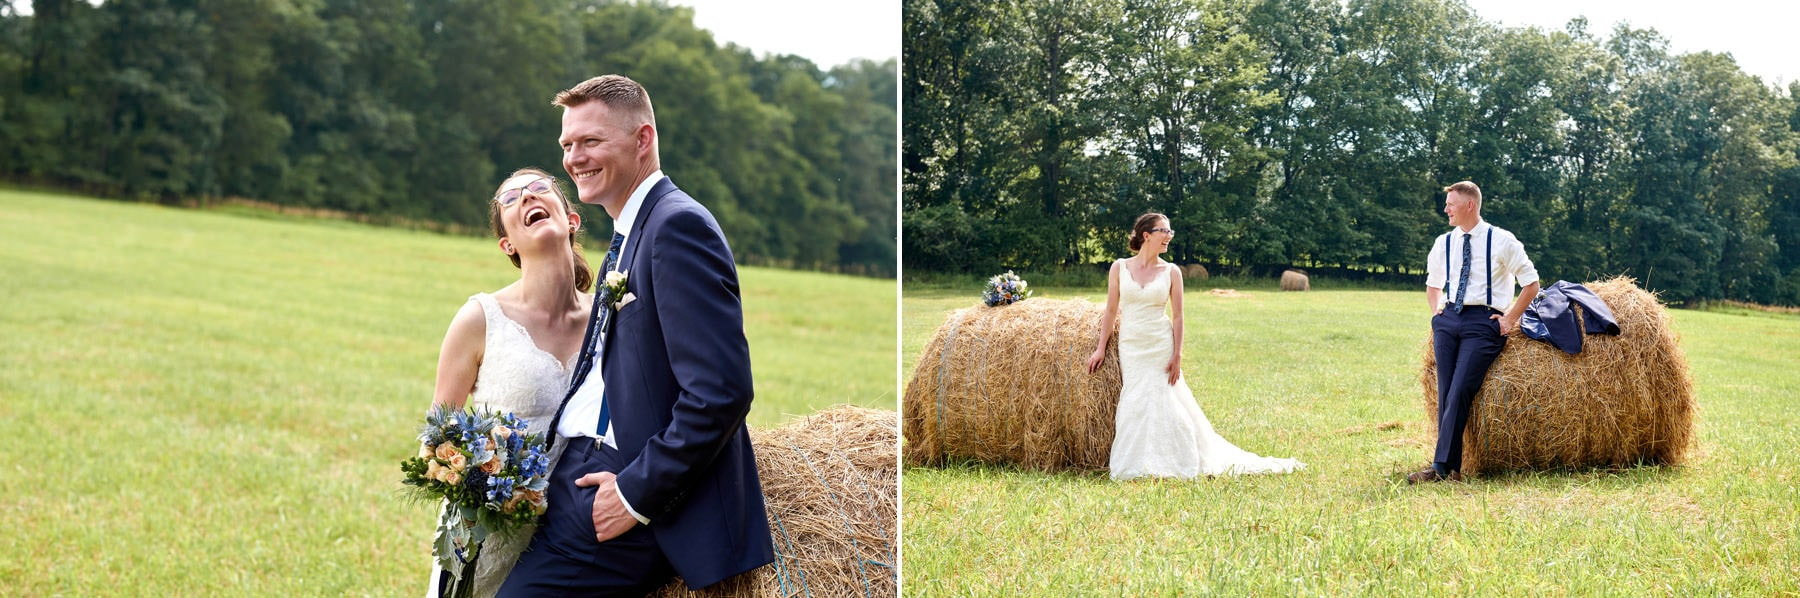 hay bale wedding photos at born to run farm